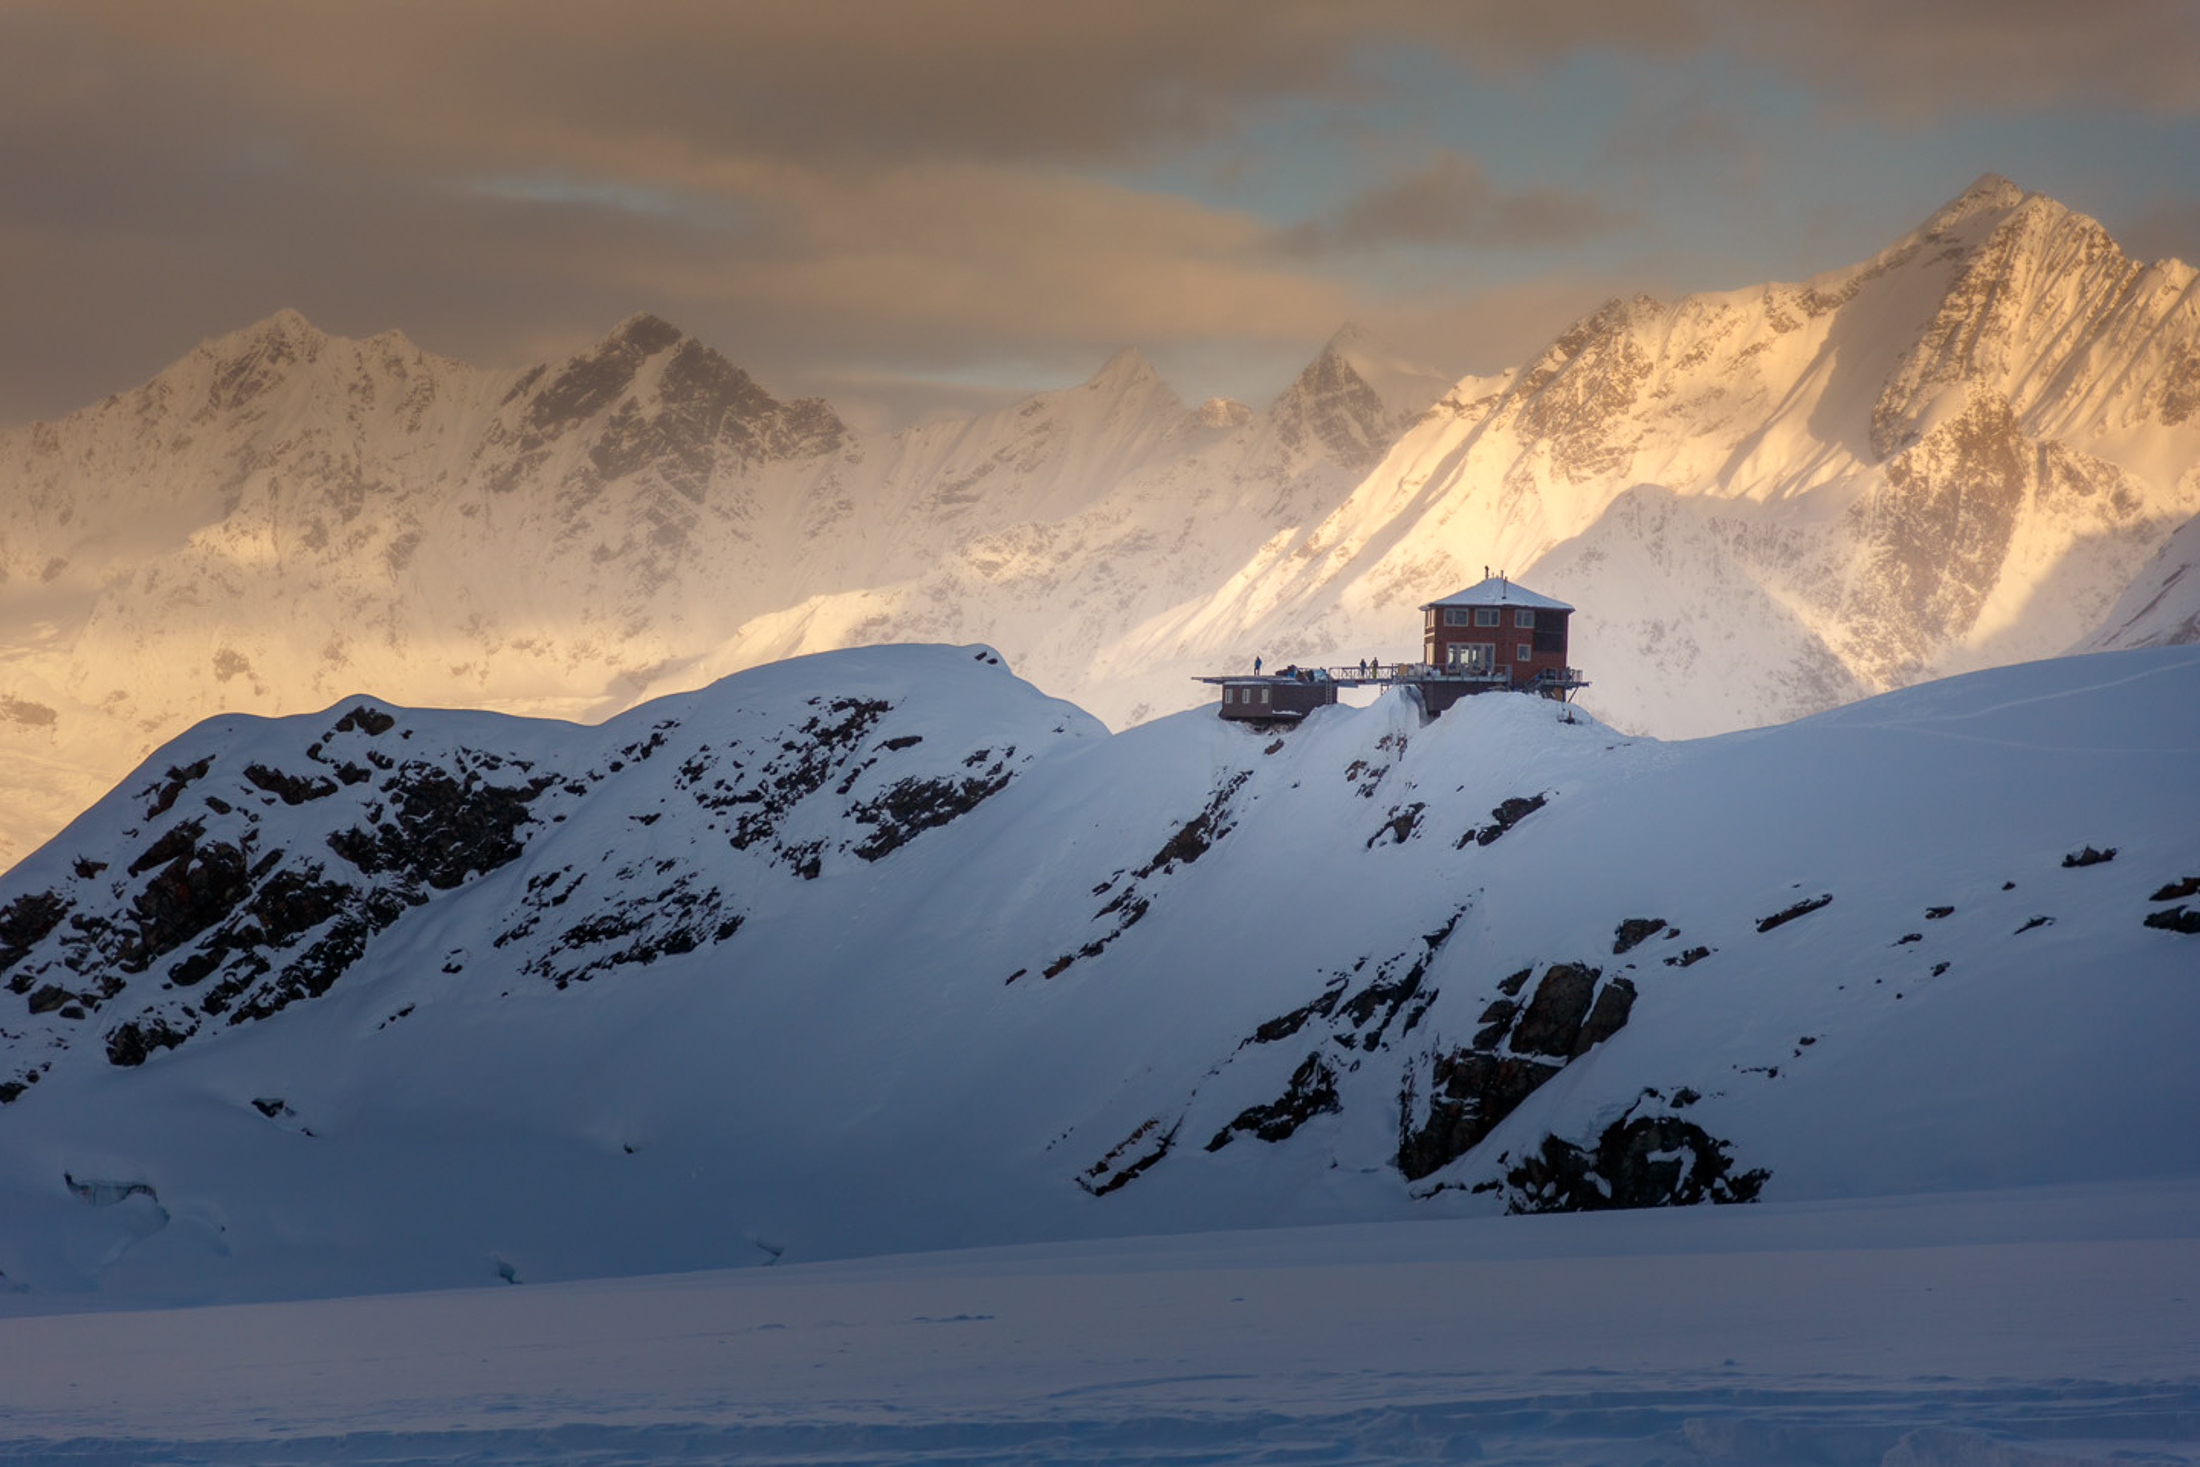 The chalet is built on an ancient nunatak on the Ruth Glacier.